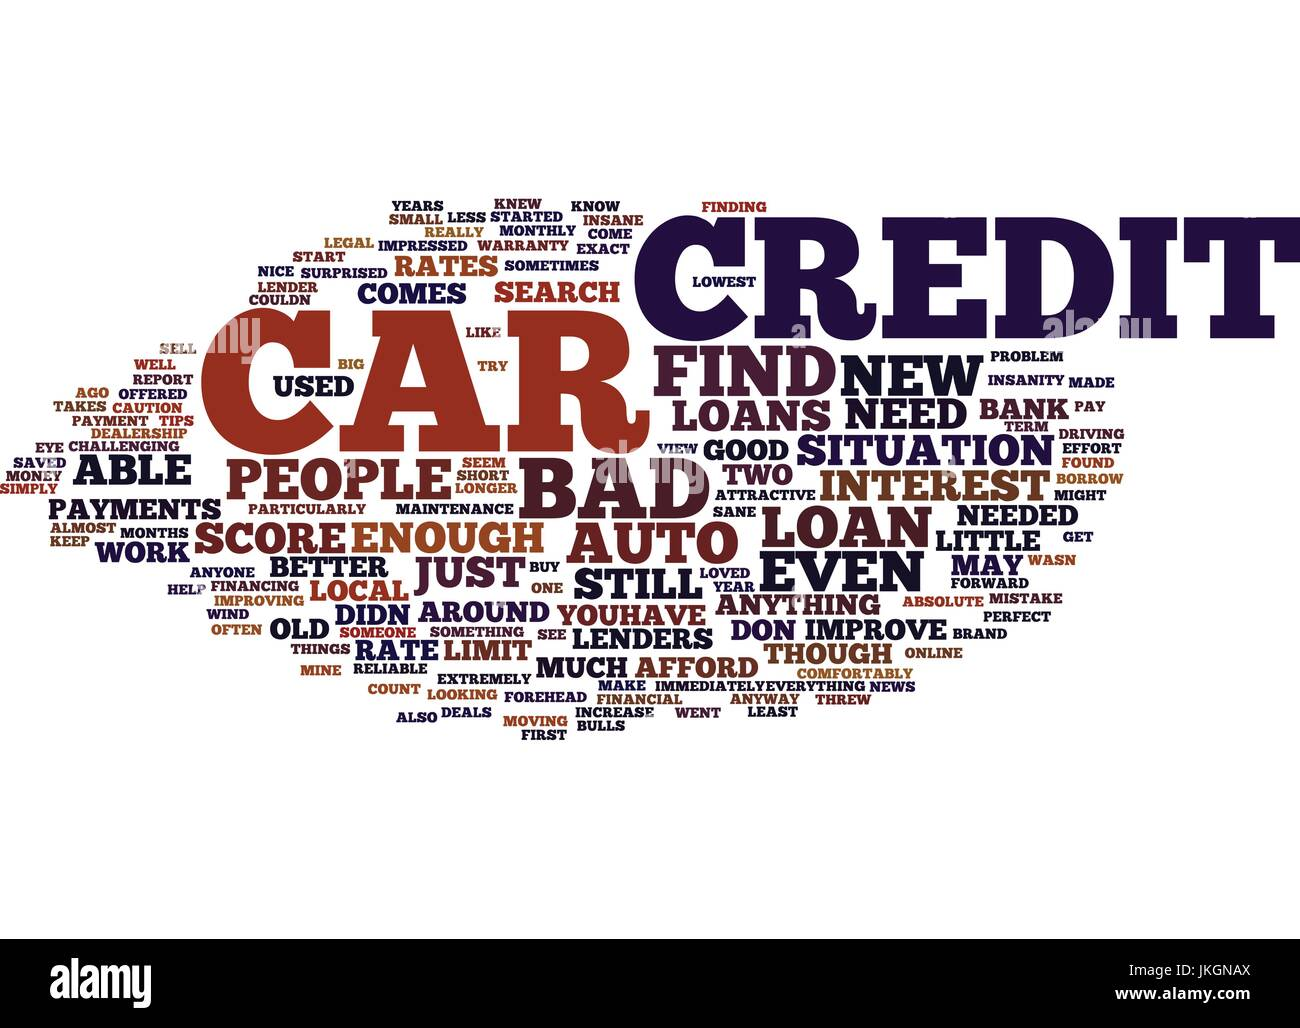 Auto Loans Bad Credit >> Auto Loans For People With Bad Credit Insanity Turned Sane